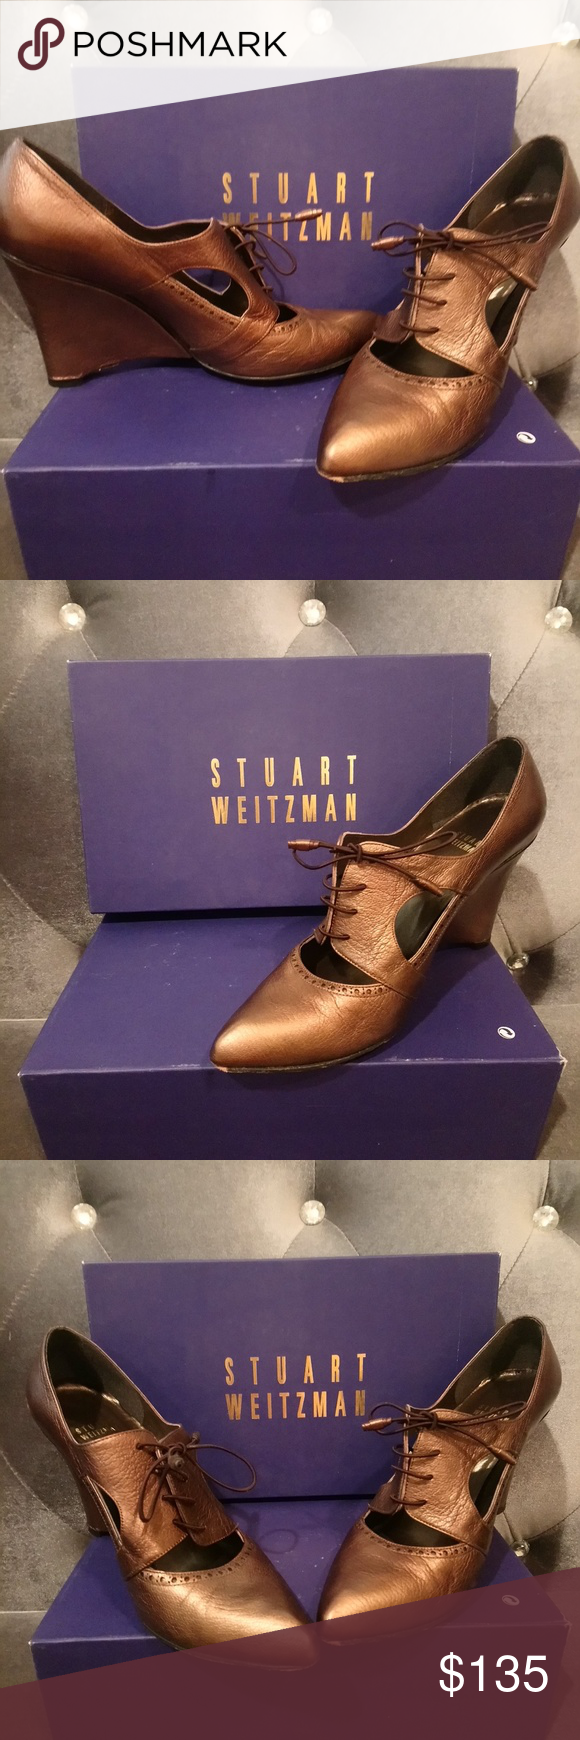 Stuart Weitzman Shoes | Stuart Weitzman | Color: Brown | Size: 7.5 #shoewedges